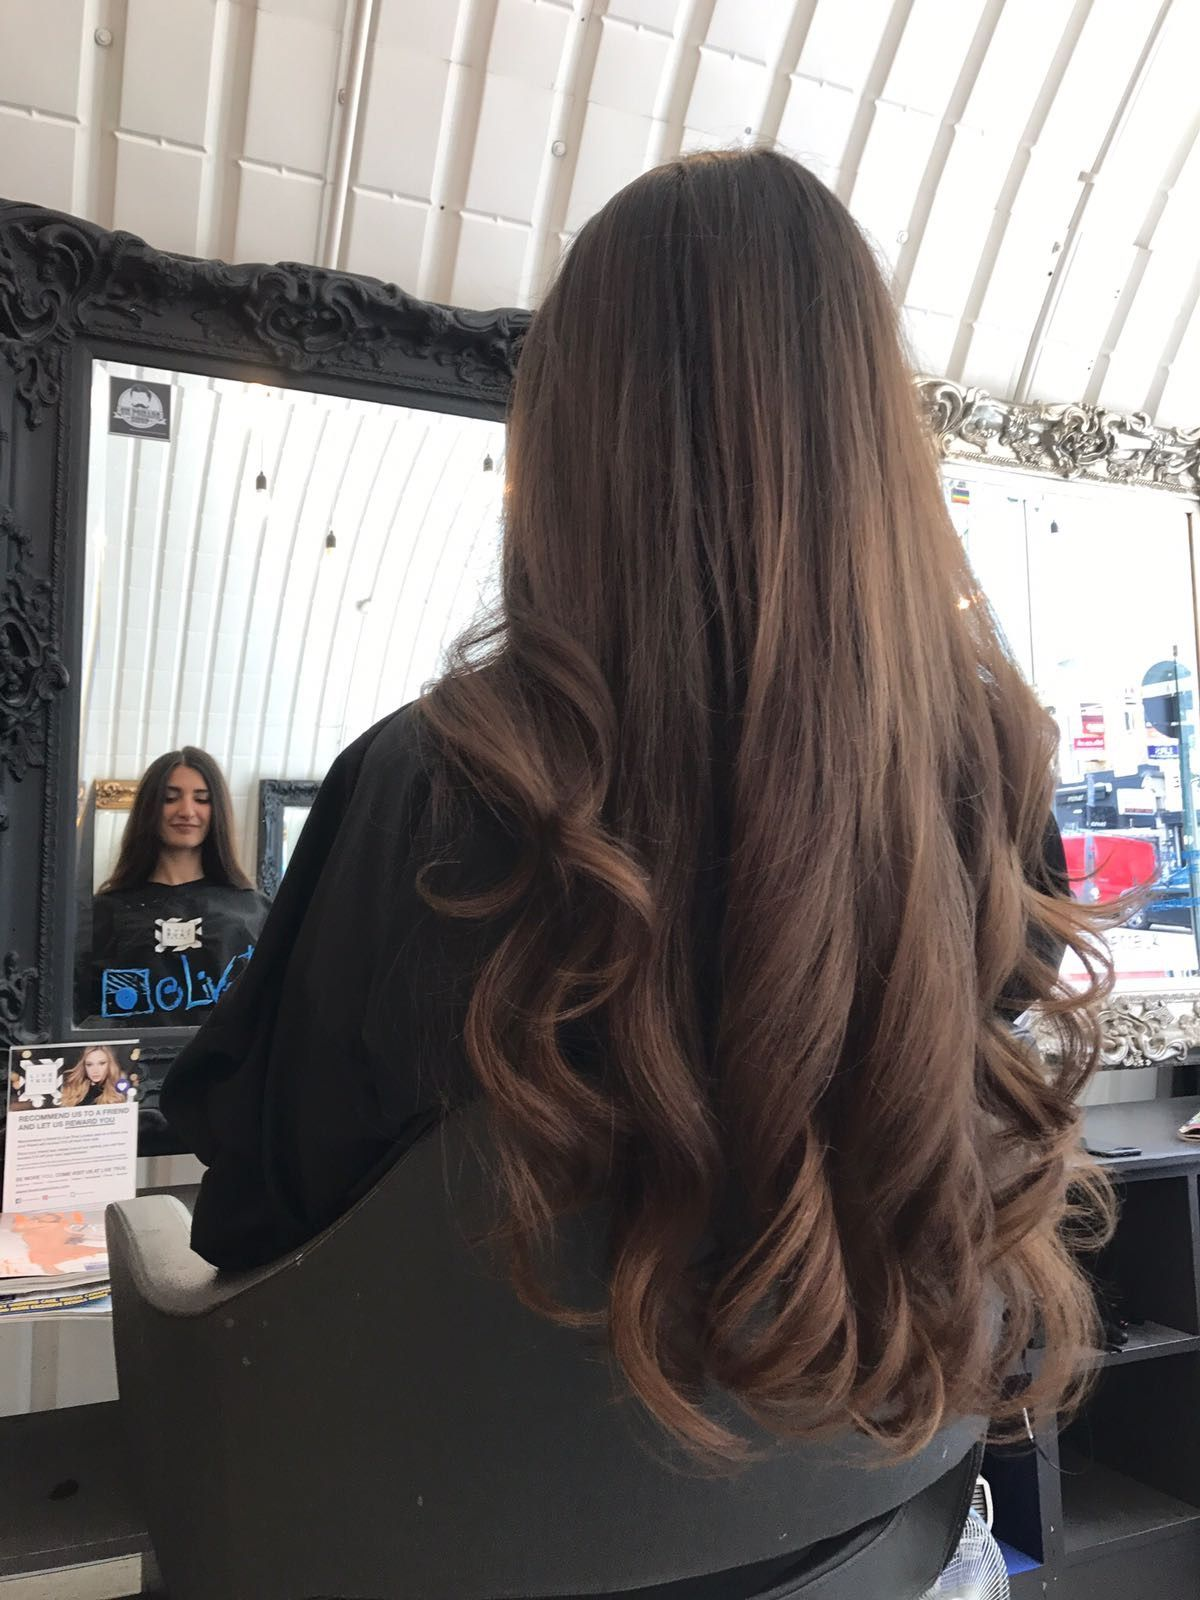 Beautiful Blow Dry At Clapham Blow Dry Hair Curls Hair Styles Curls For Long Hair